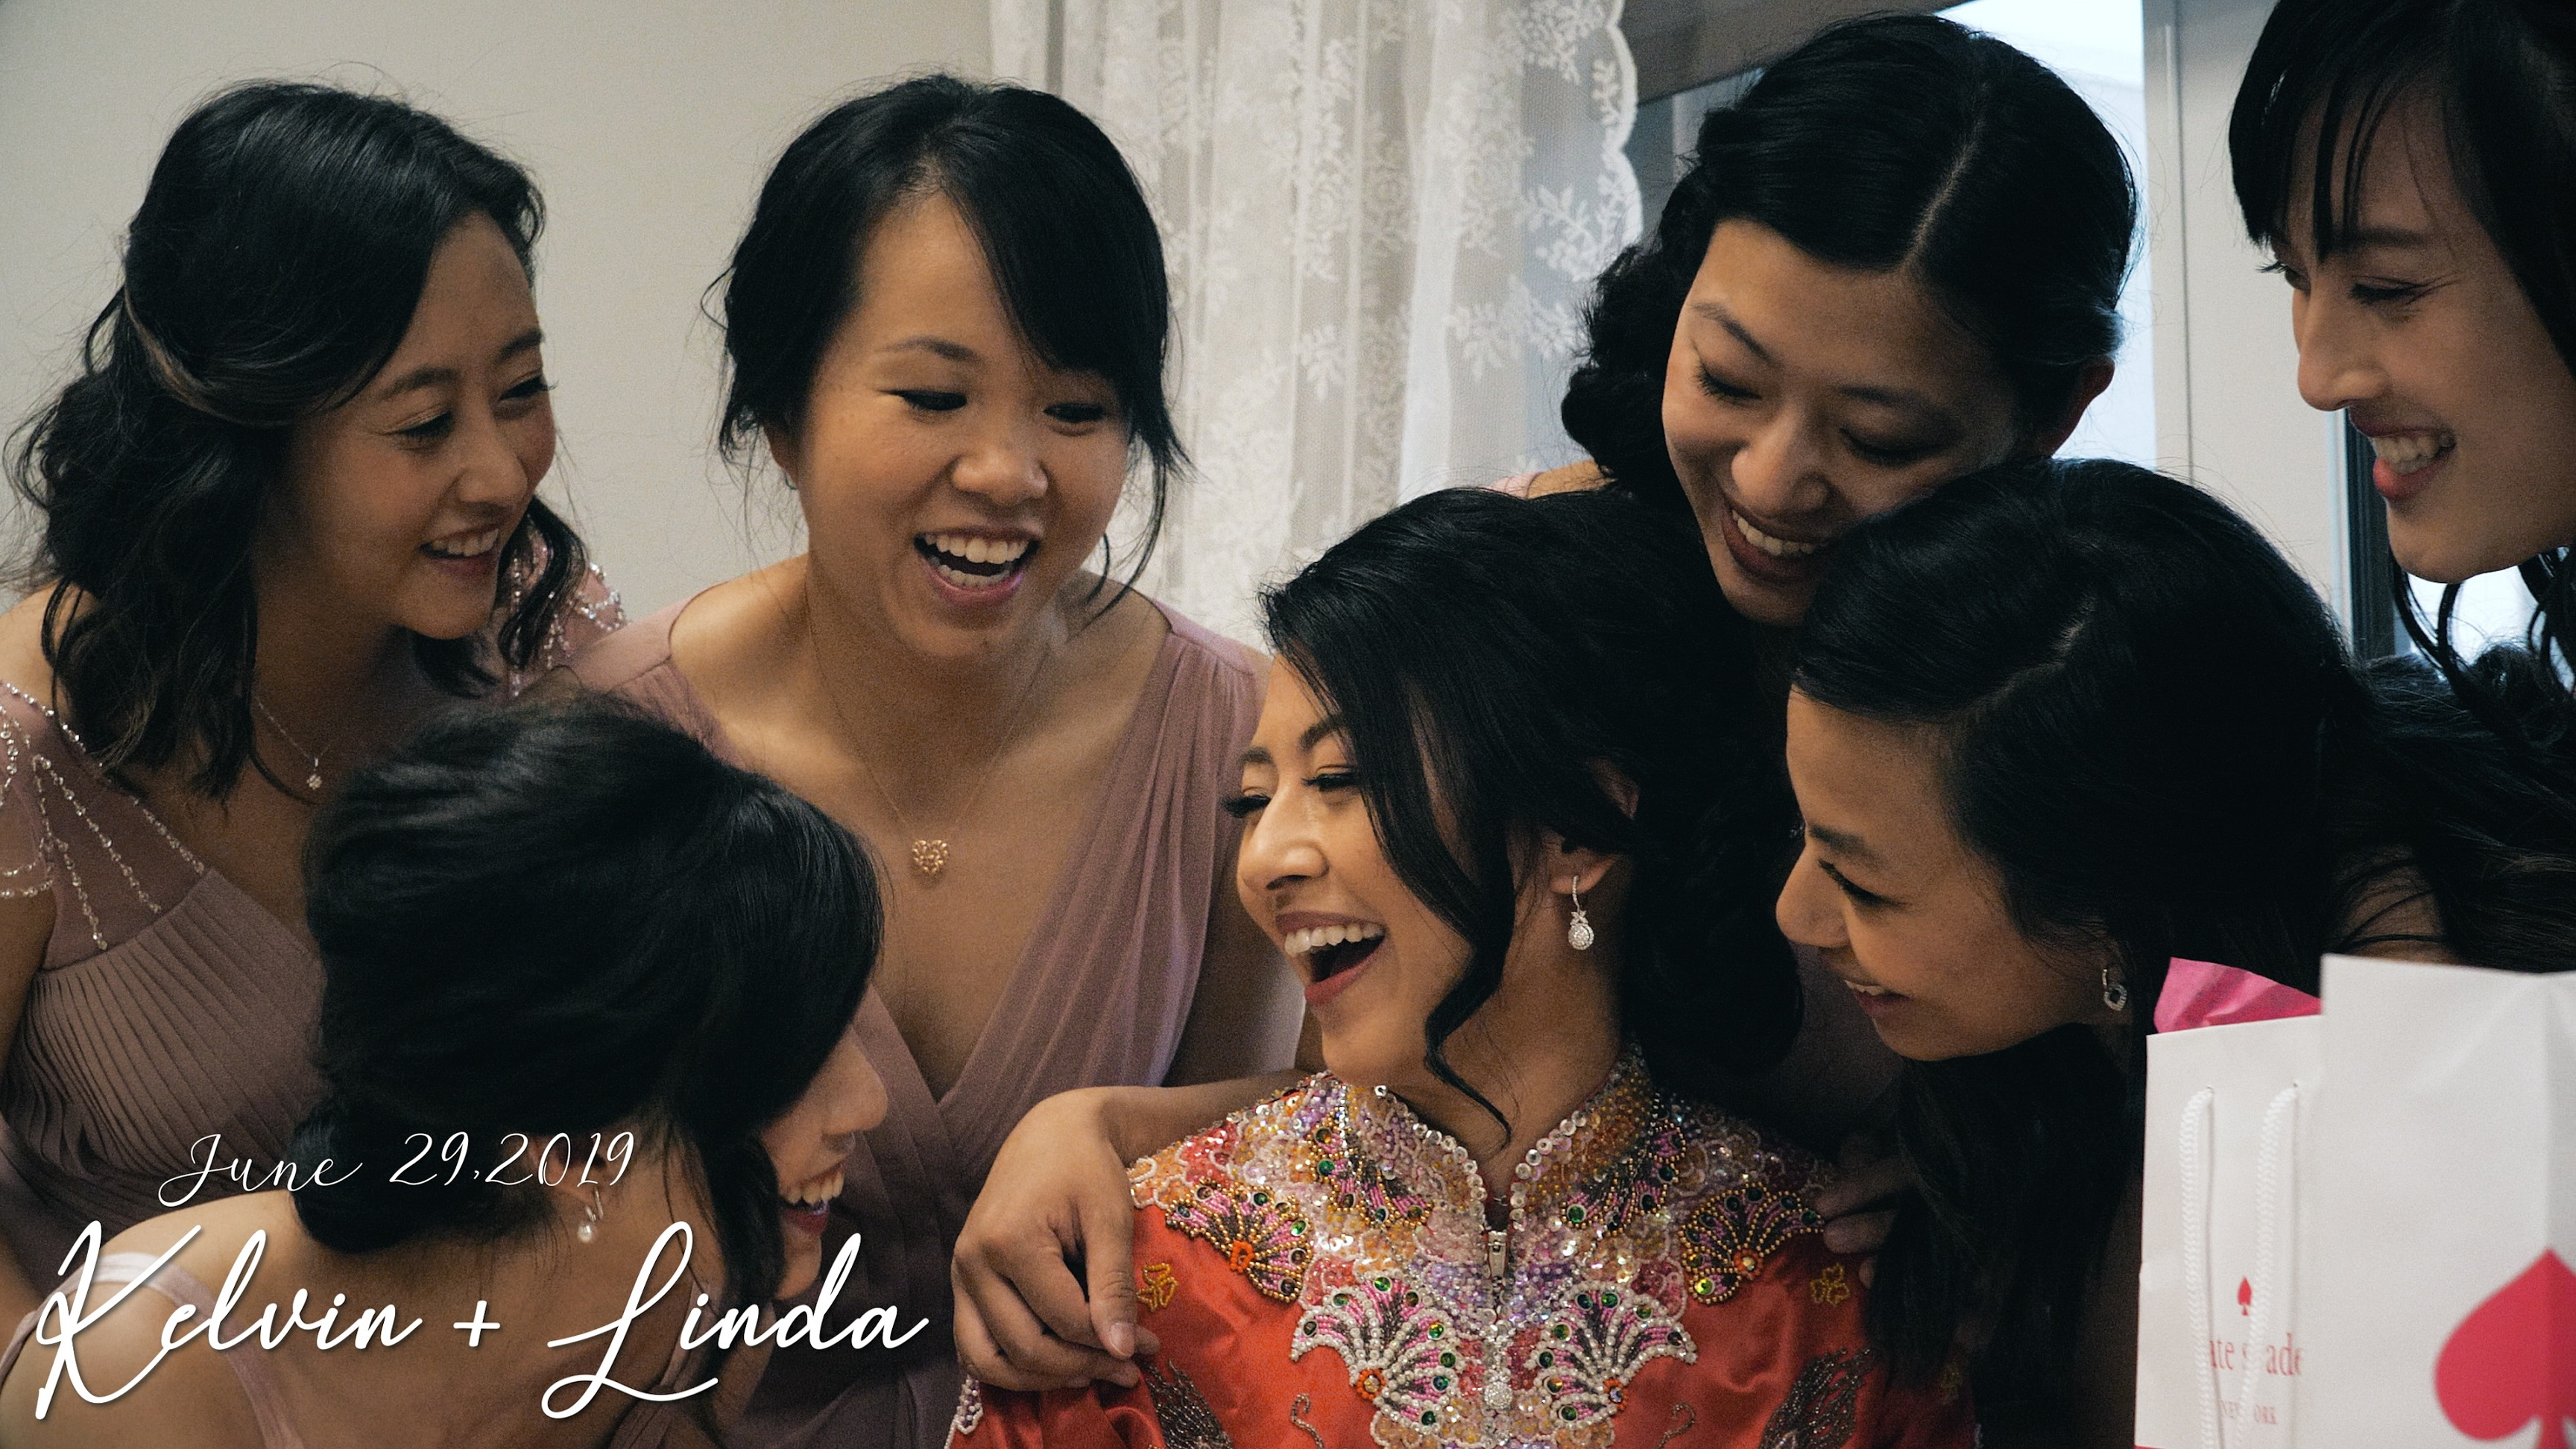 Kelvin + Linda | Edmonton, Canada | Delta Hotels by Marriott Edmonton South Conference Centre